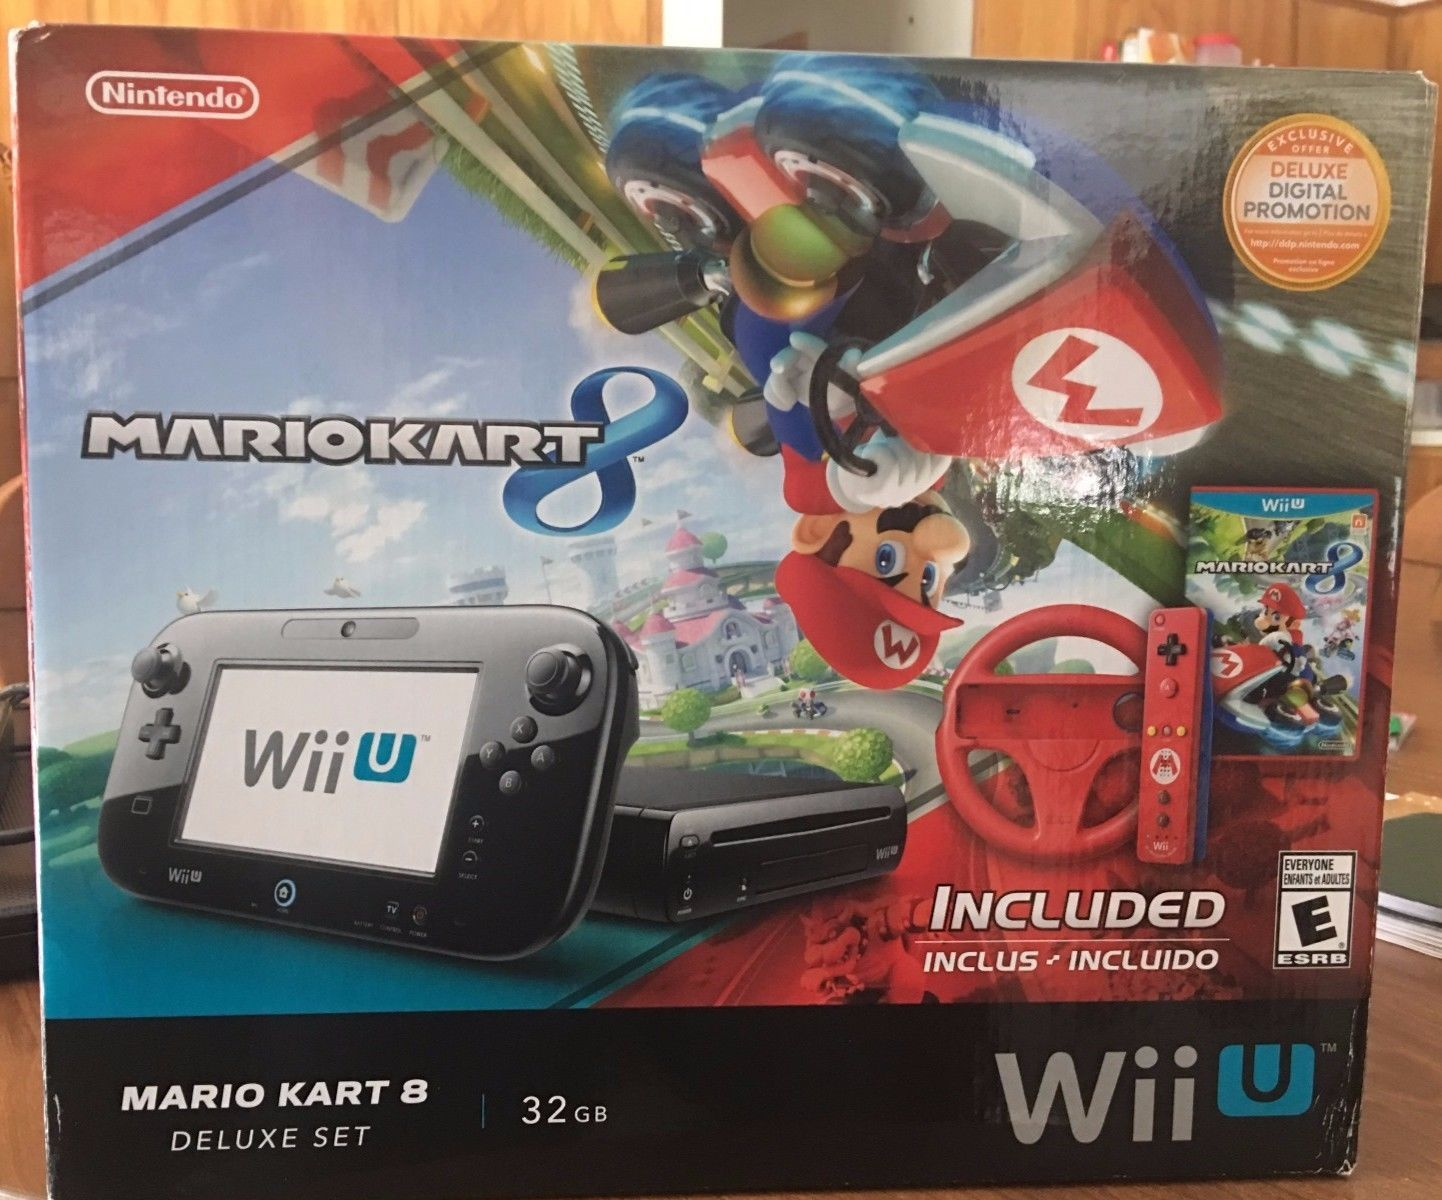 nintendo wii u mario kart 8 deluxe set 32gb black system. Black Bedroom Furniture Sets. Home Design Ideas